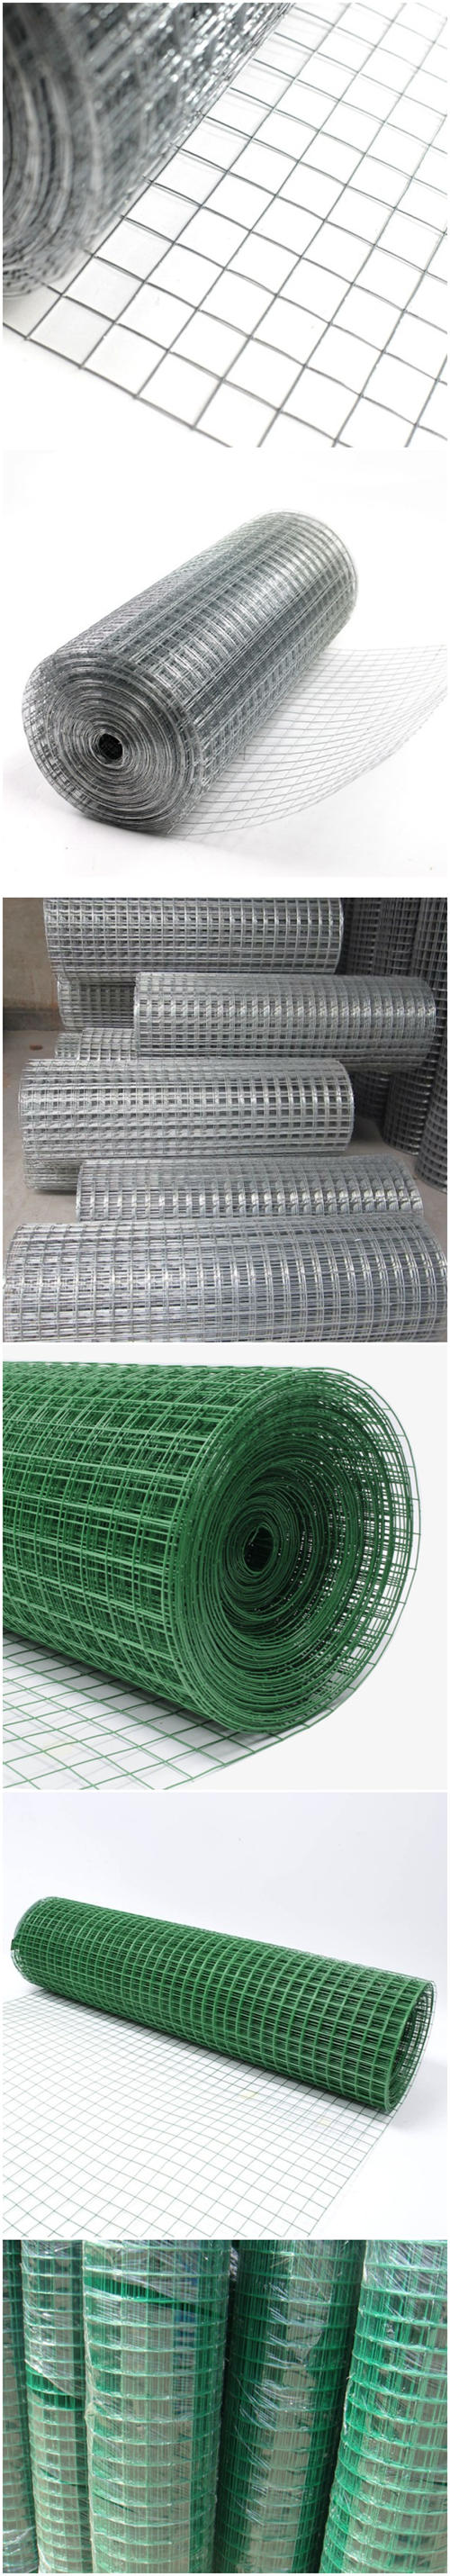 Galvanized Welded Wire Mesh Fabric China Supply